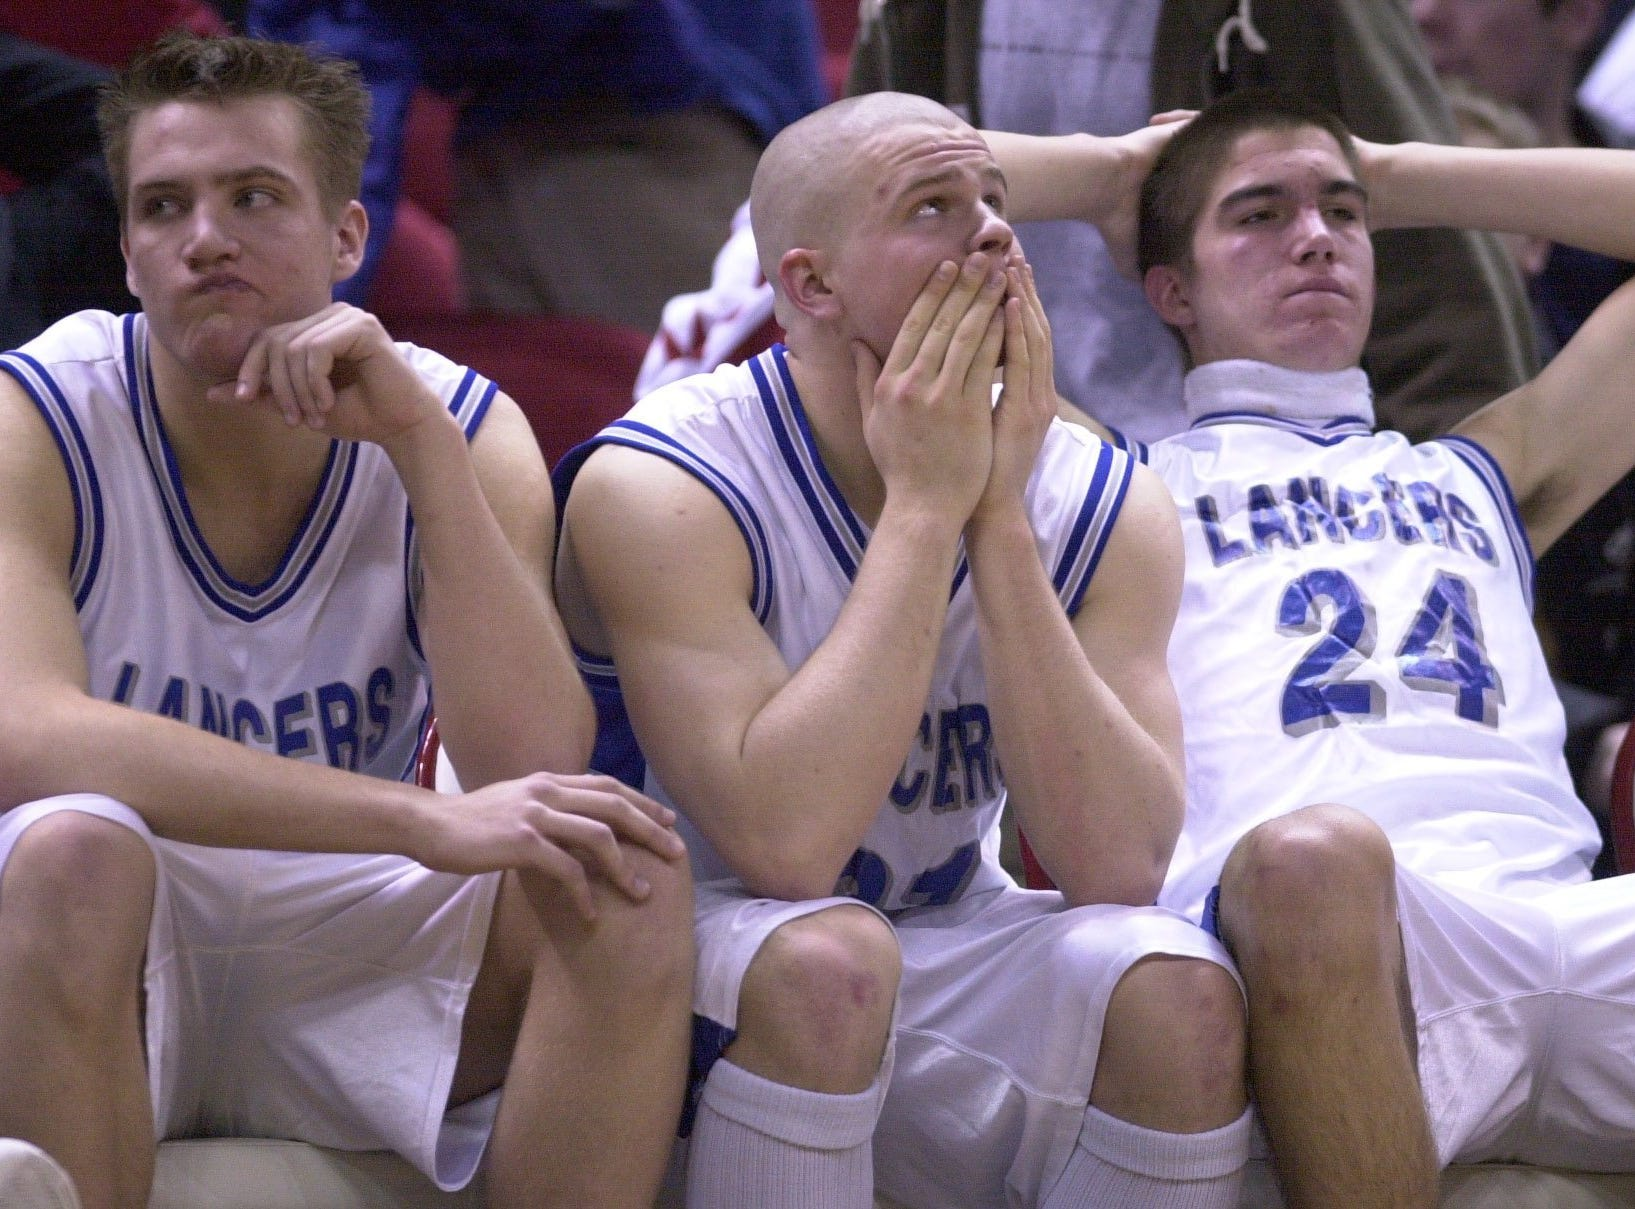 Brookfield Central players Adam Dahlke (left), Darryl Schnell andTodd Ciborowski watch the final seconds of the game tick down to a 44-39 loss to Fond du Lac in the 2002 WIAA state semifinals.